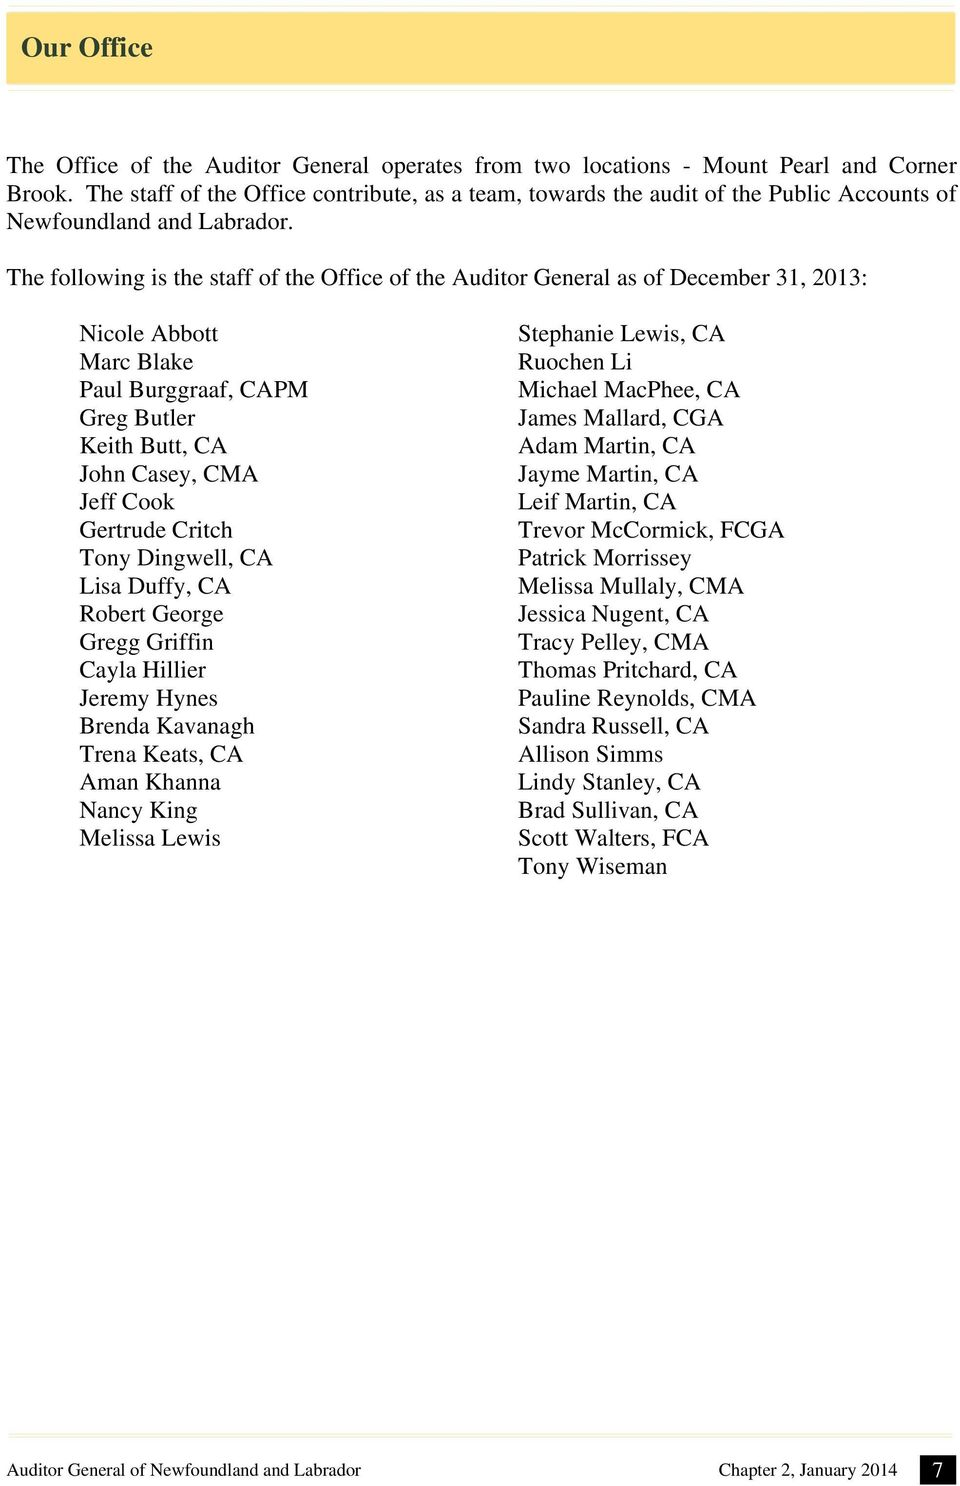 The following is the staff of the Office of the Auditor General as of December 31, 2013: Nicole Abbott Marc Blake Paul Burggraaf, CAPM Greg Butler Keith Butt, CA John Casey, CMA Jeff Cook Gertrude